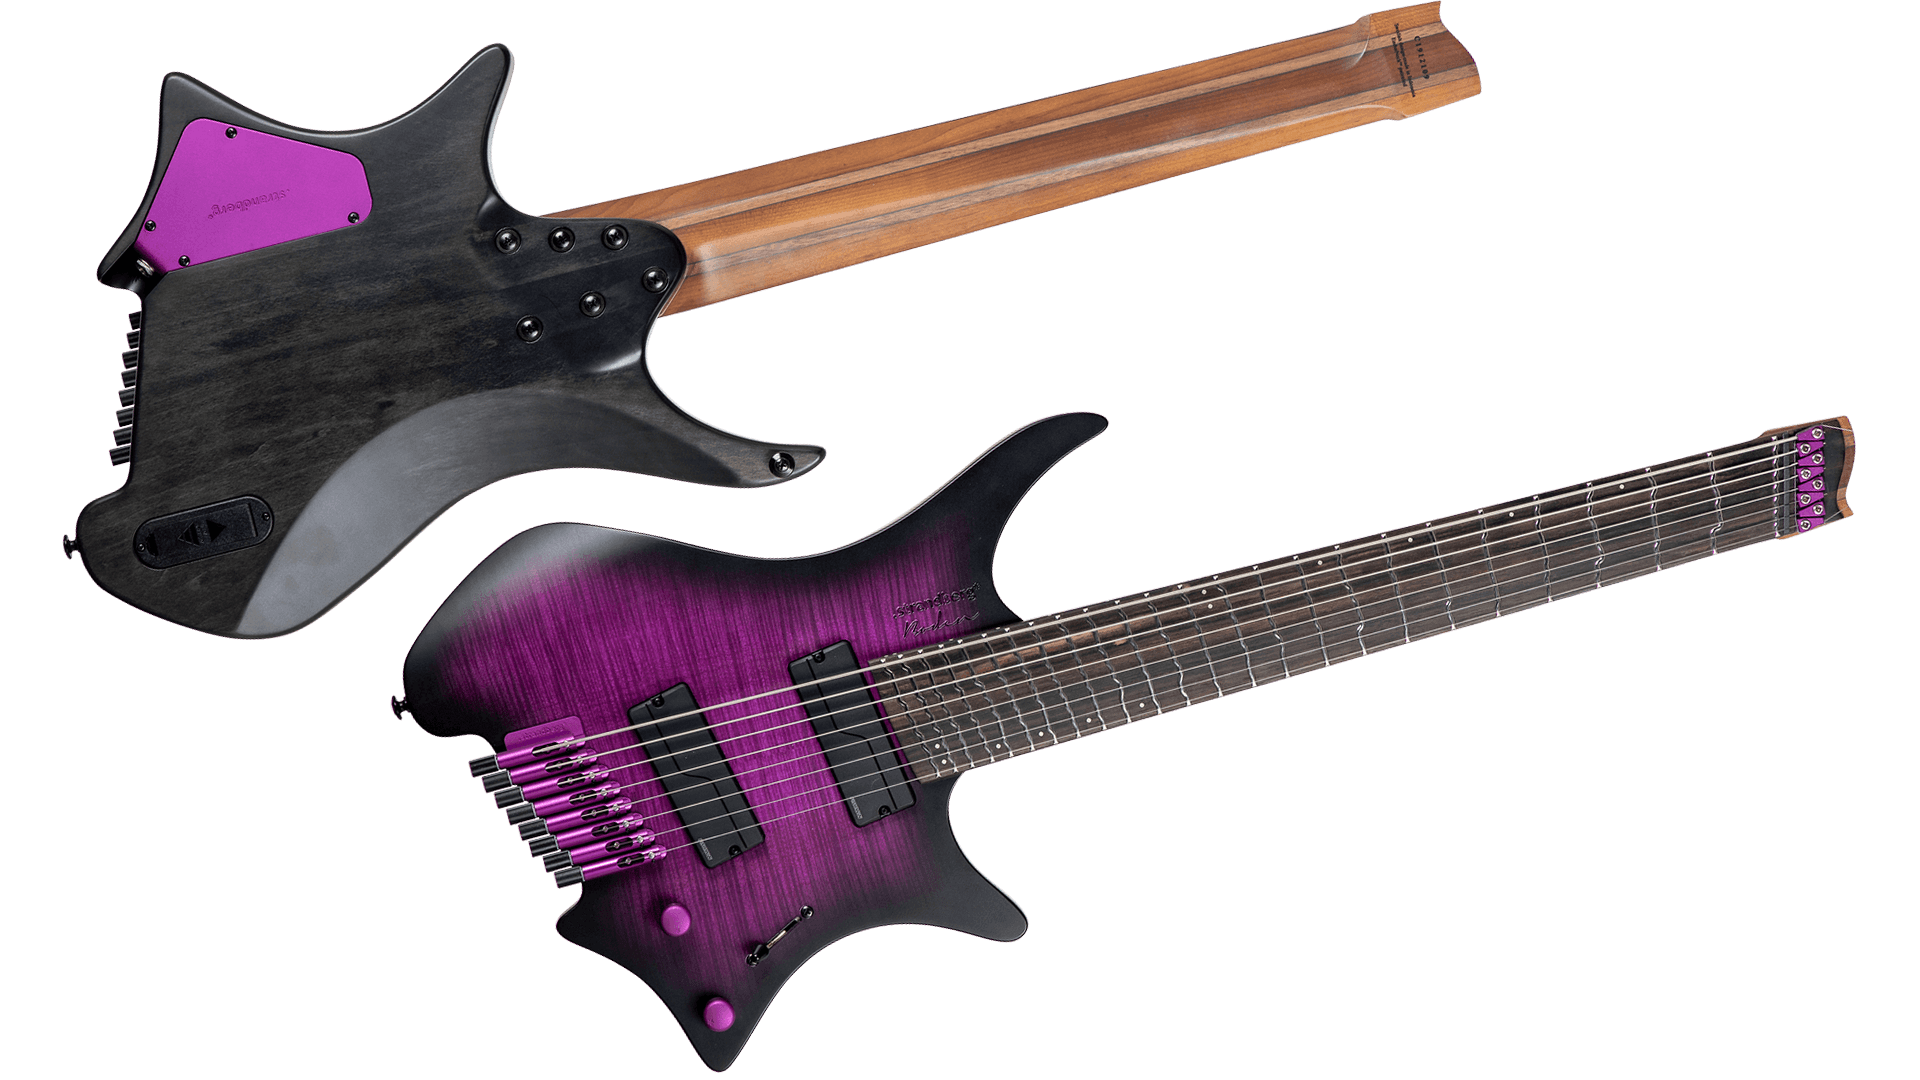 True temp purple 8 string headless guitar front and back view